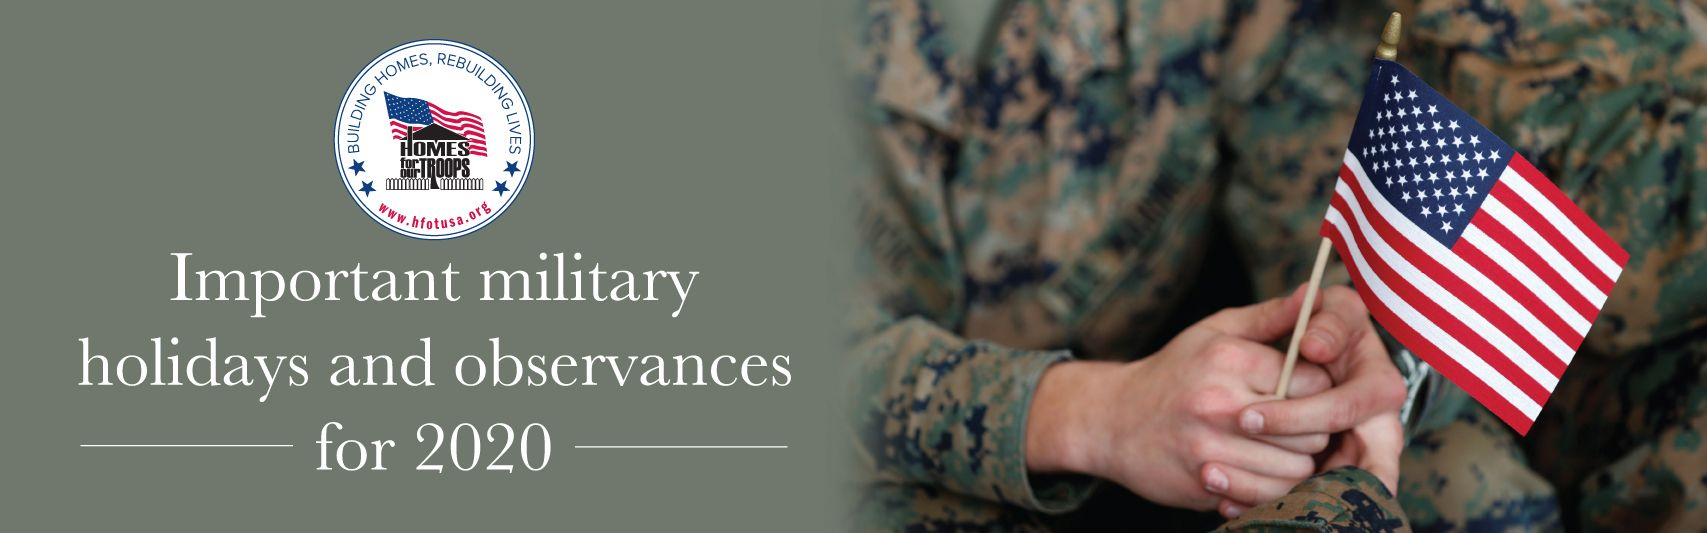 Homes For Our Troops | Important Military Holidays 2019 for January 16 Holidays & Observances